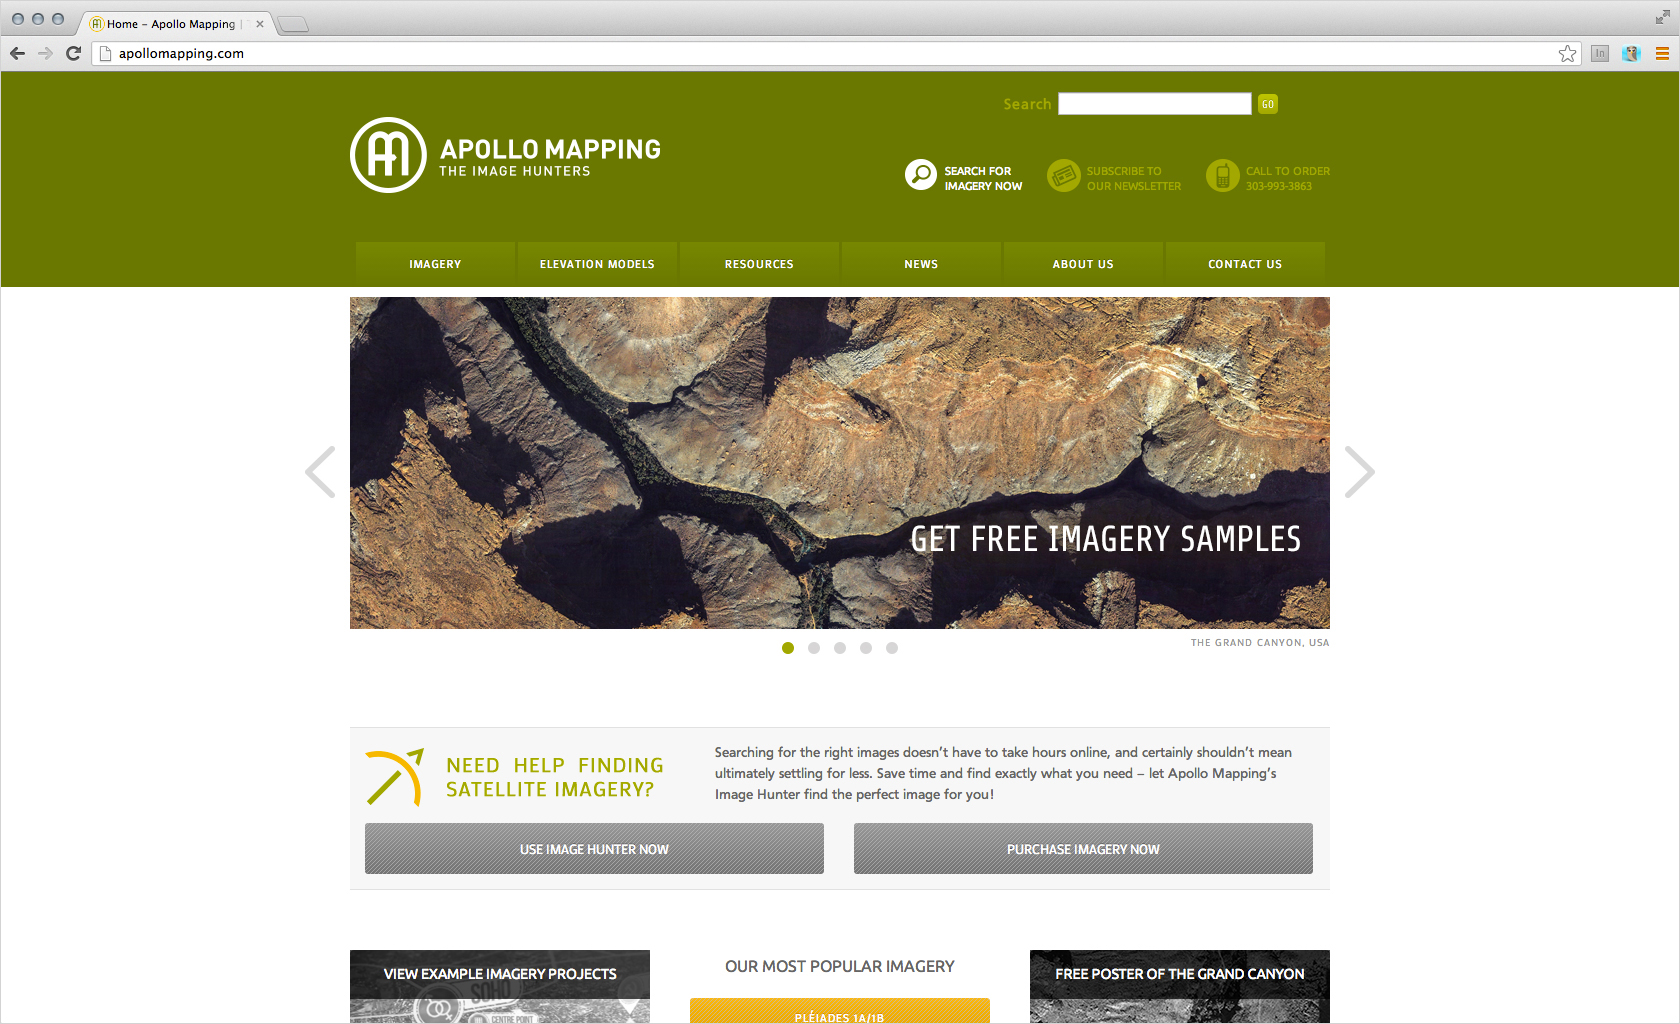 apollo mapping website redesign 23rd studios